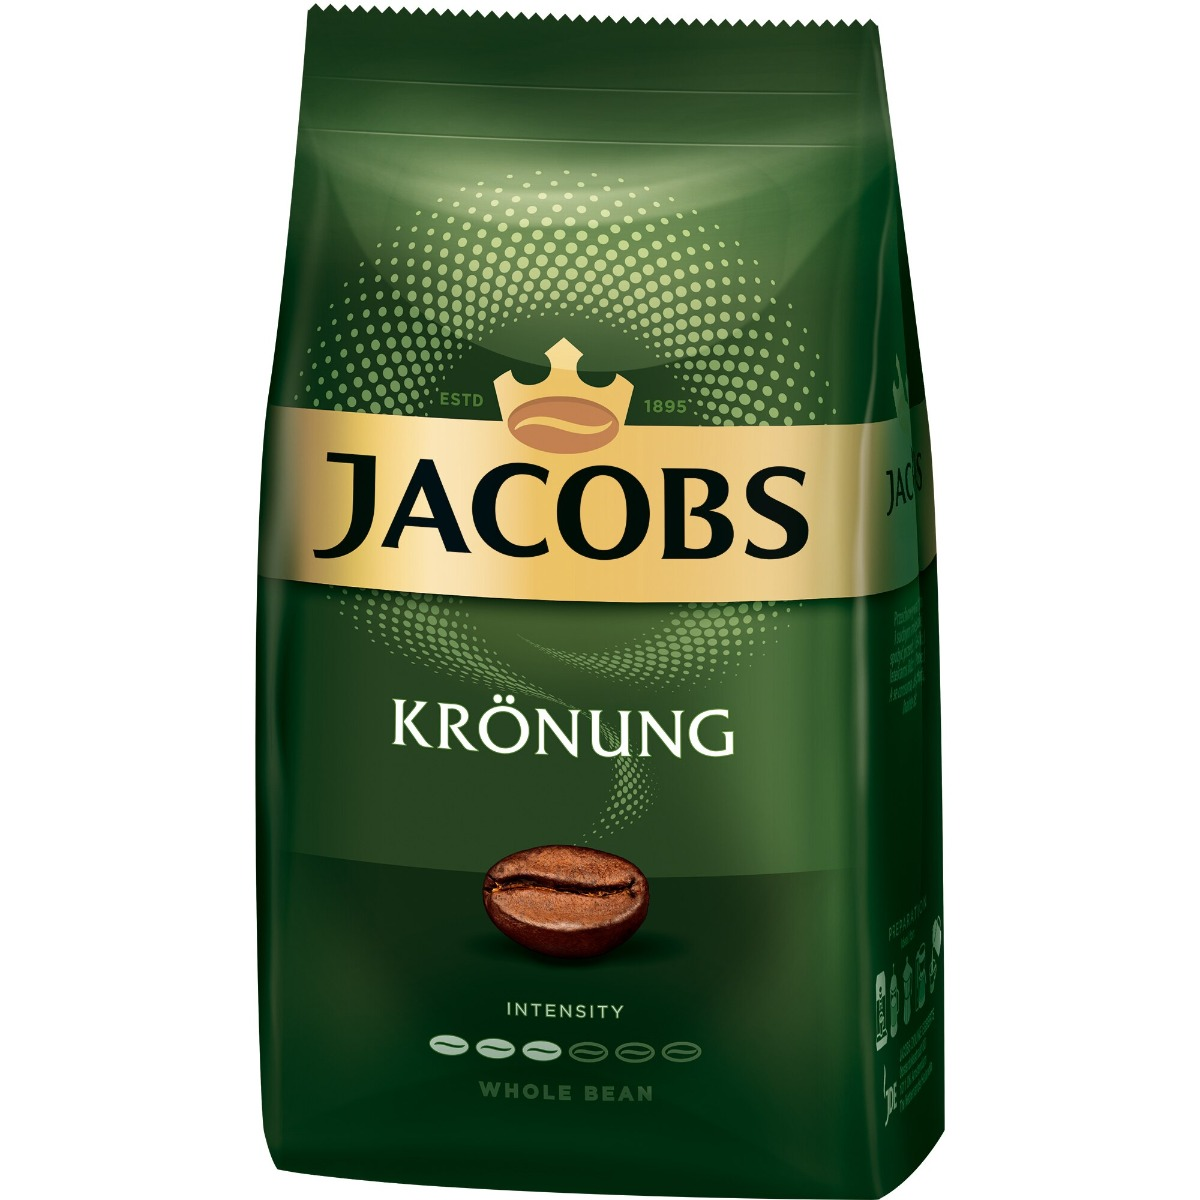 Cafea boabe Jacobs Kronung, 250 g imagine